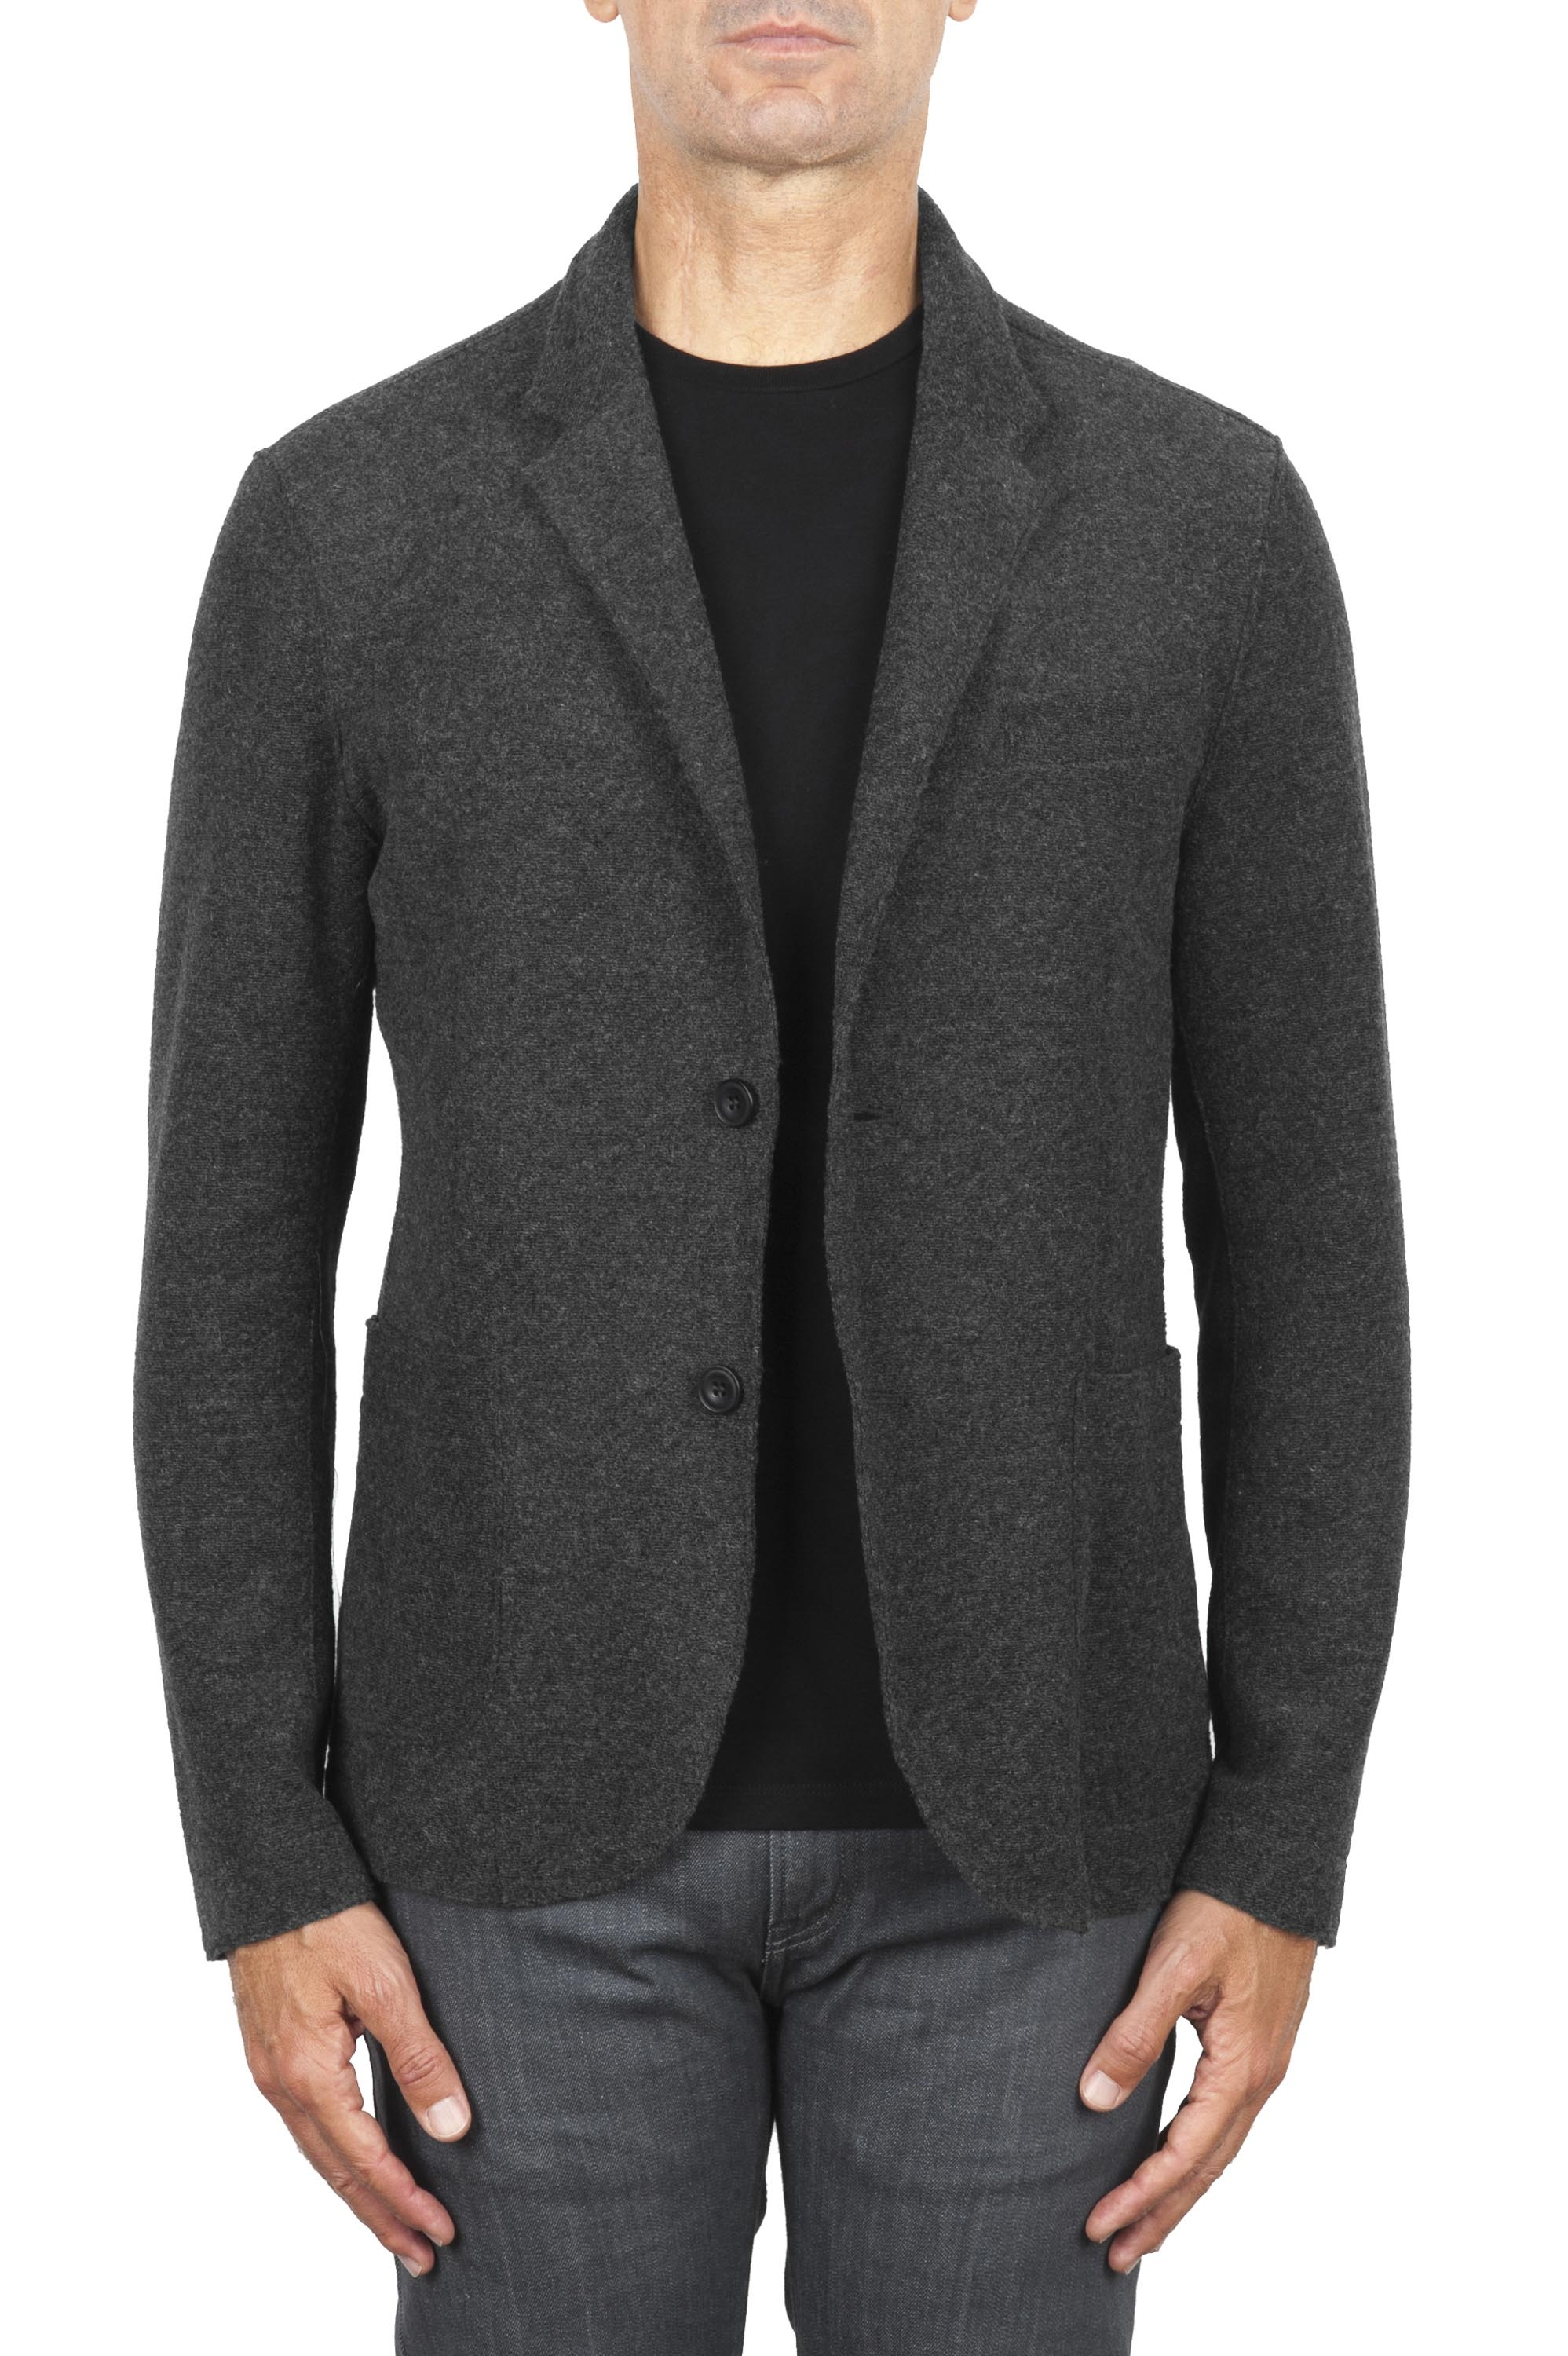 SBU 03091_2020AW Anthracite wool blend sport jacket unconstructed and unlined 01